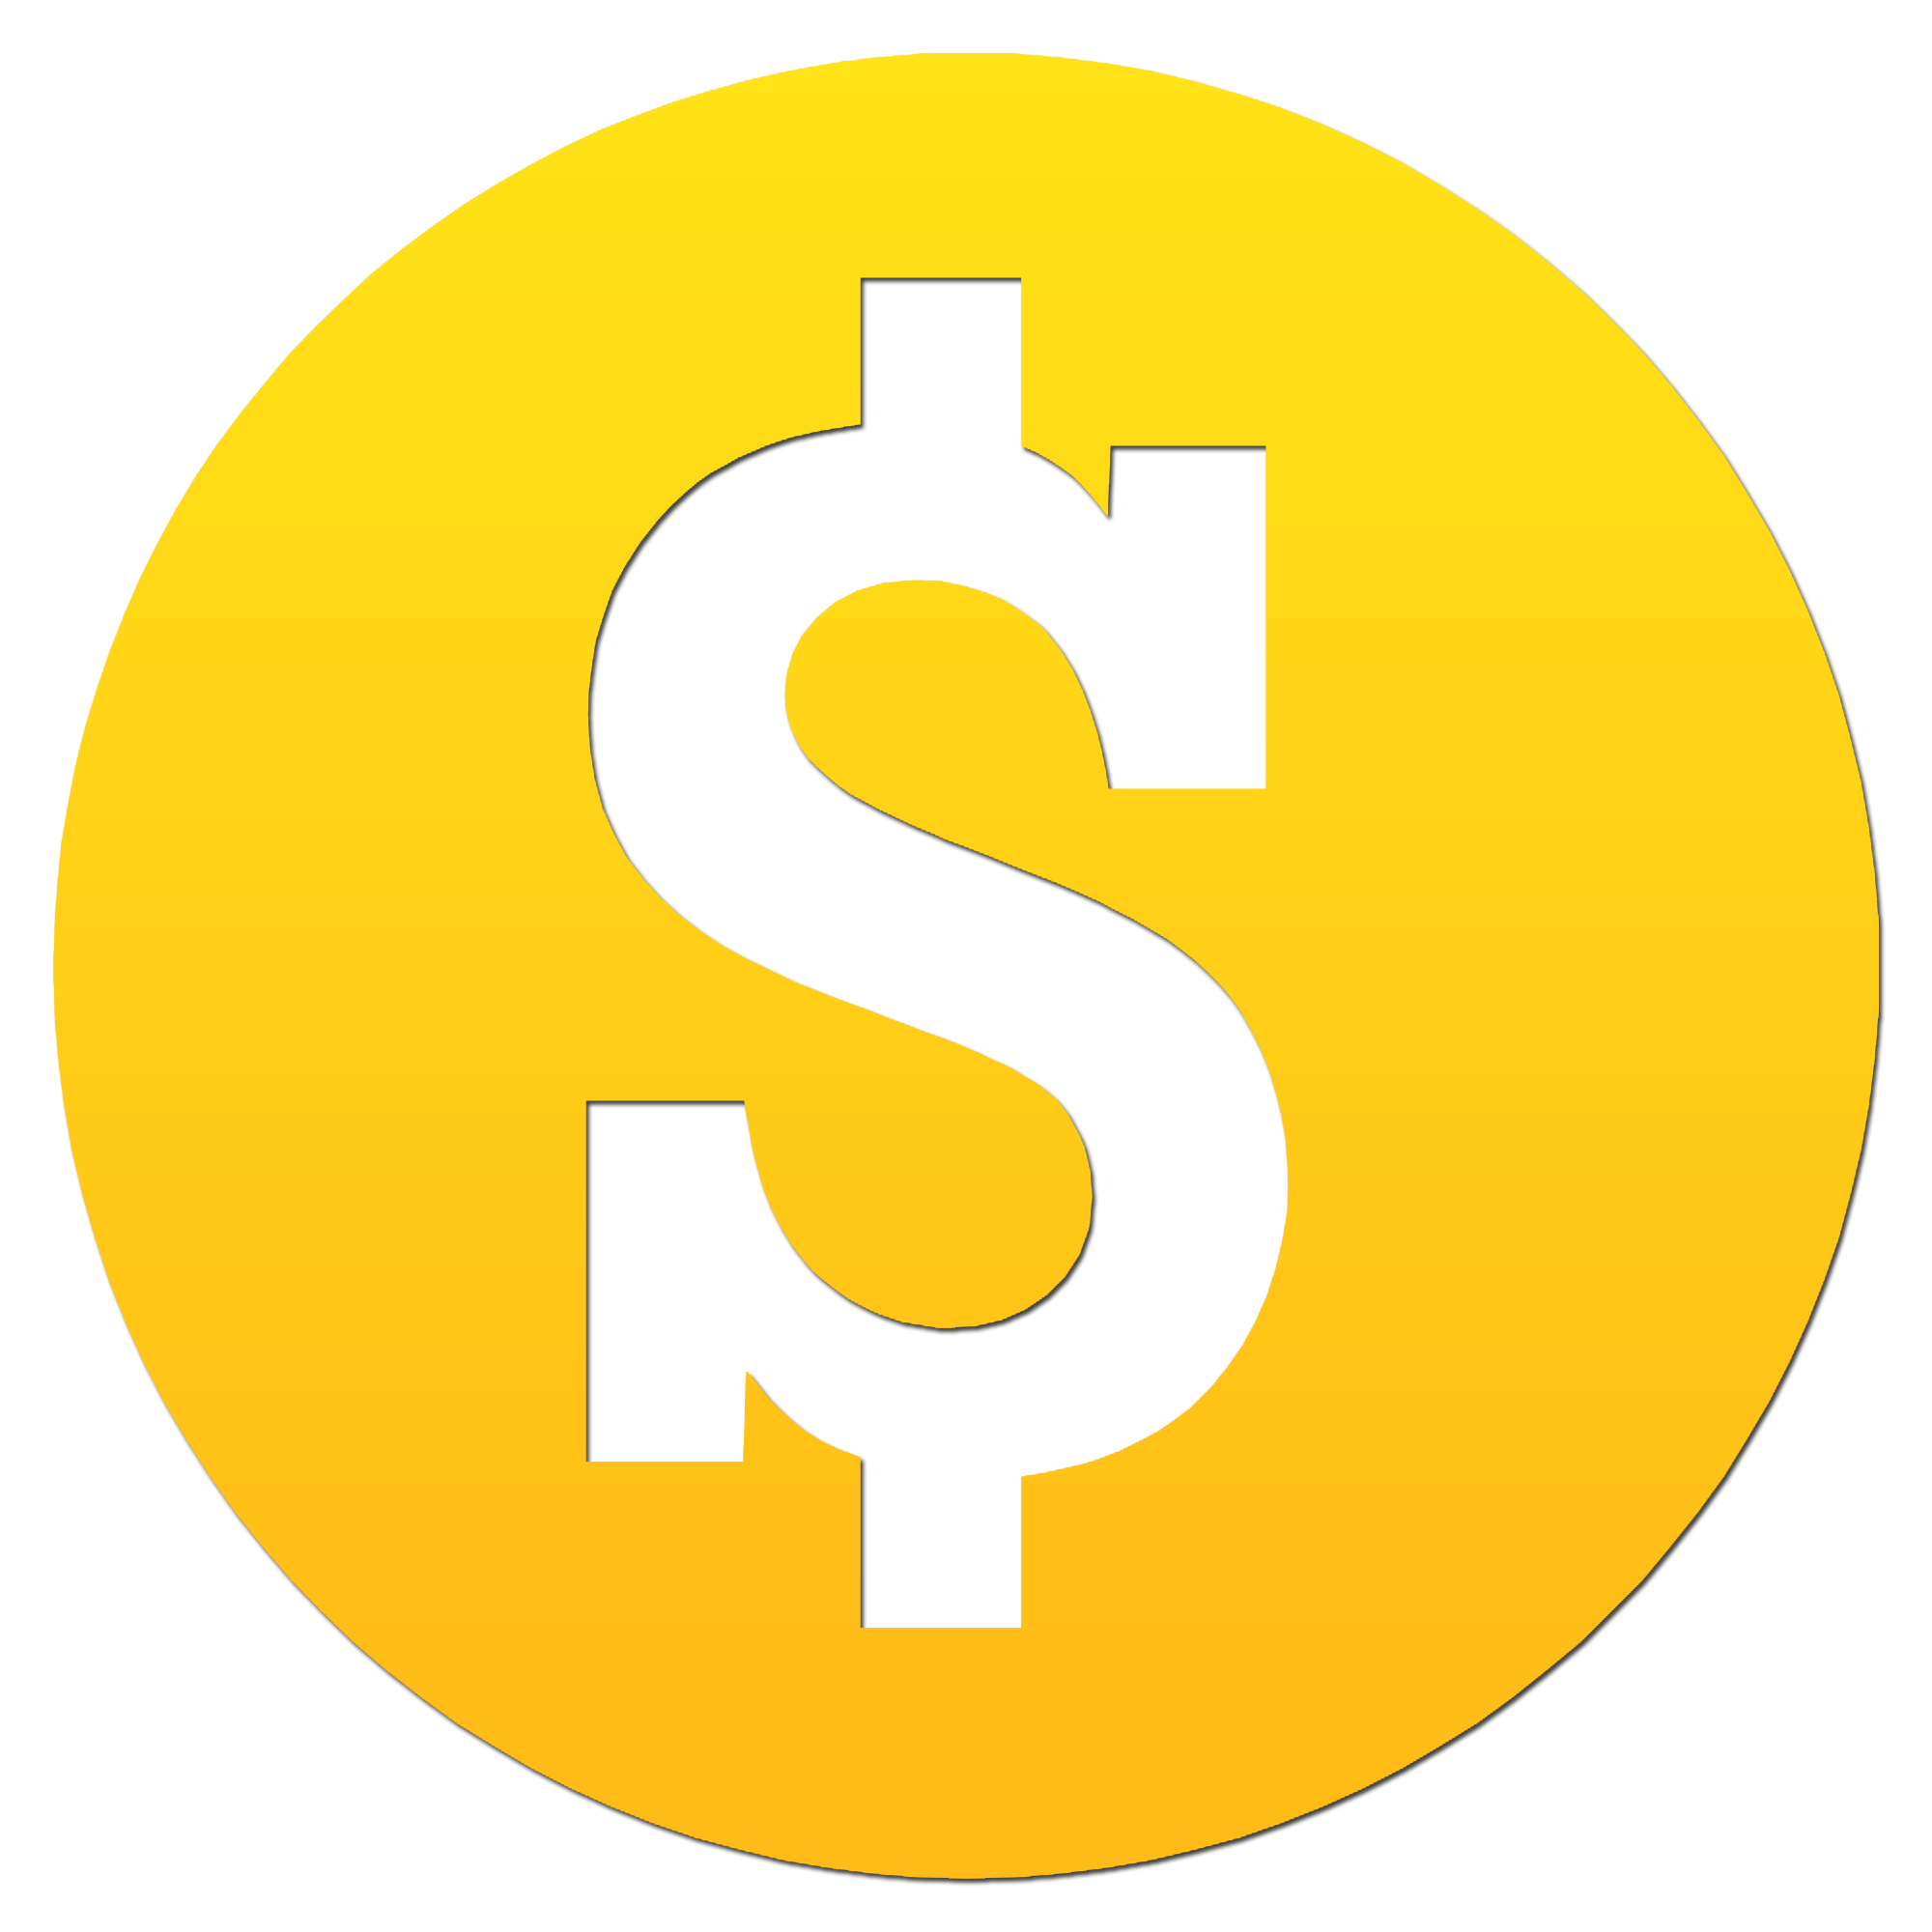 Dollar Sign Icon Png image #3550